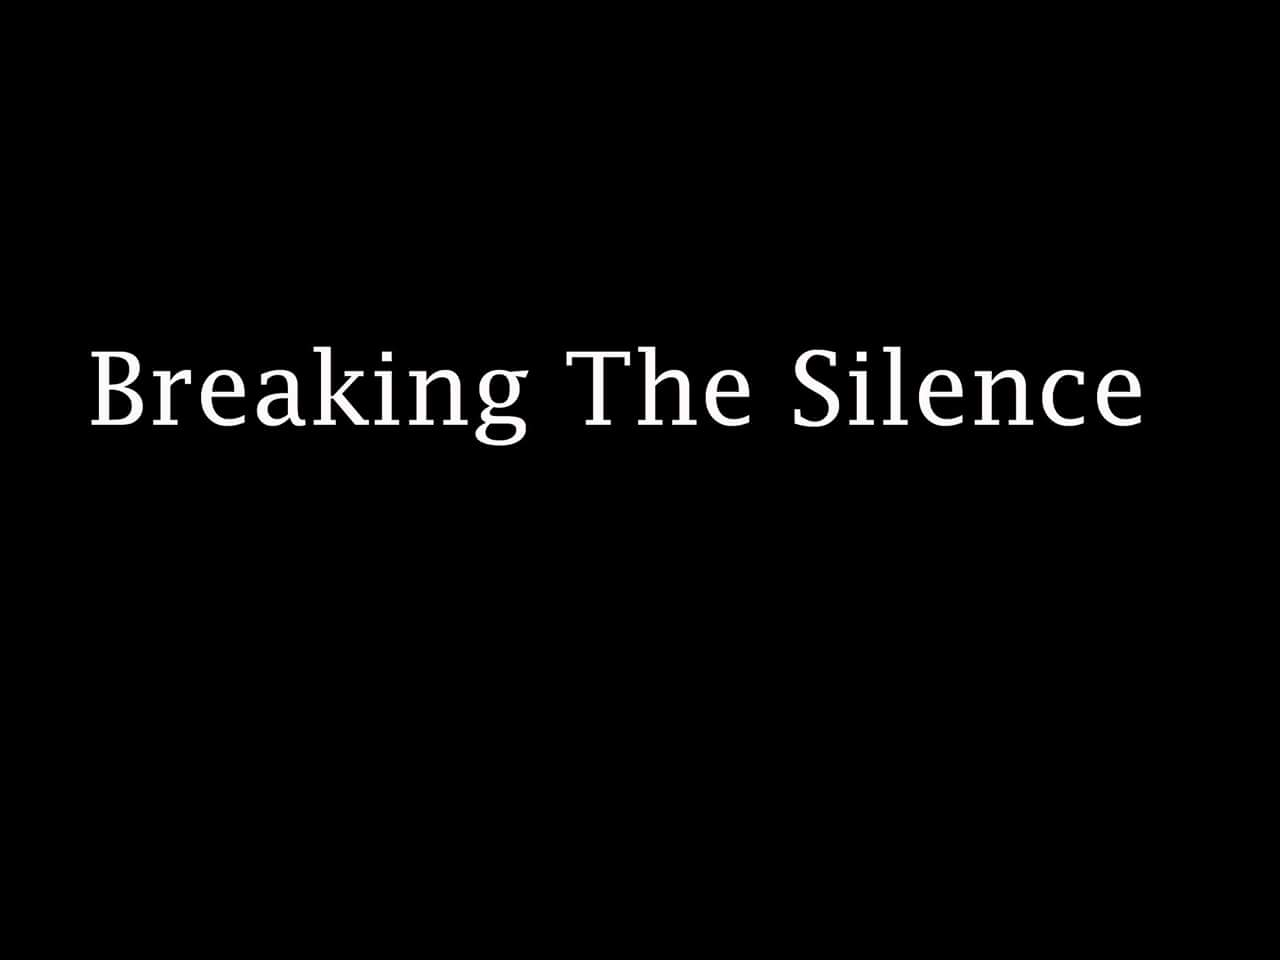 RT @Escape_Charity: ANNOUNCEMENT 🎤 tickets available online for our Launch night https://t.co/67CSpmMAj2 #BREAKINGTHESILENCE #rt #share htt…